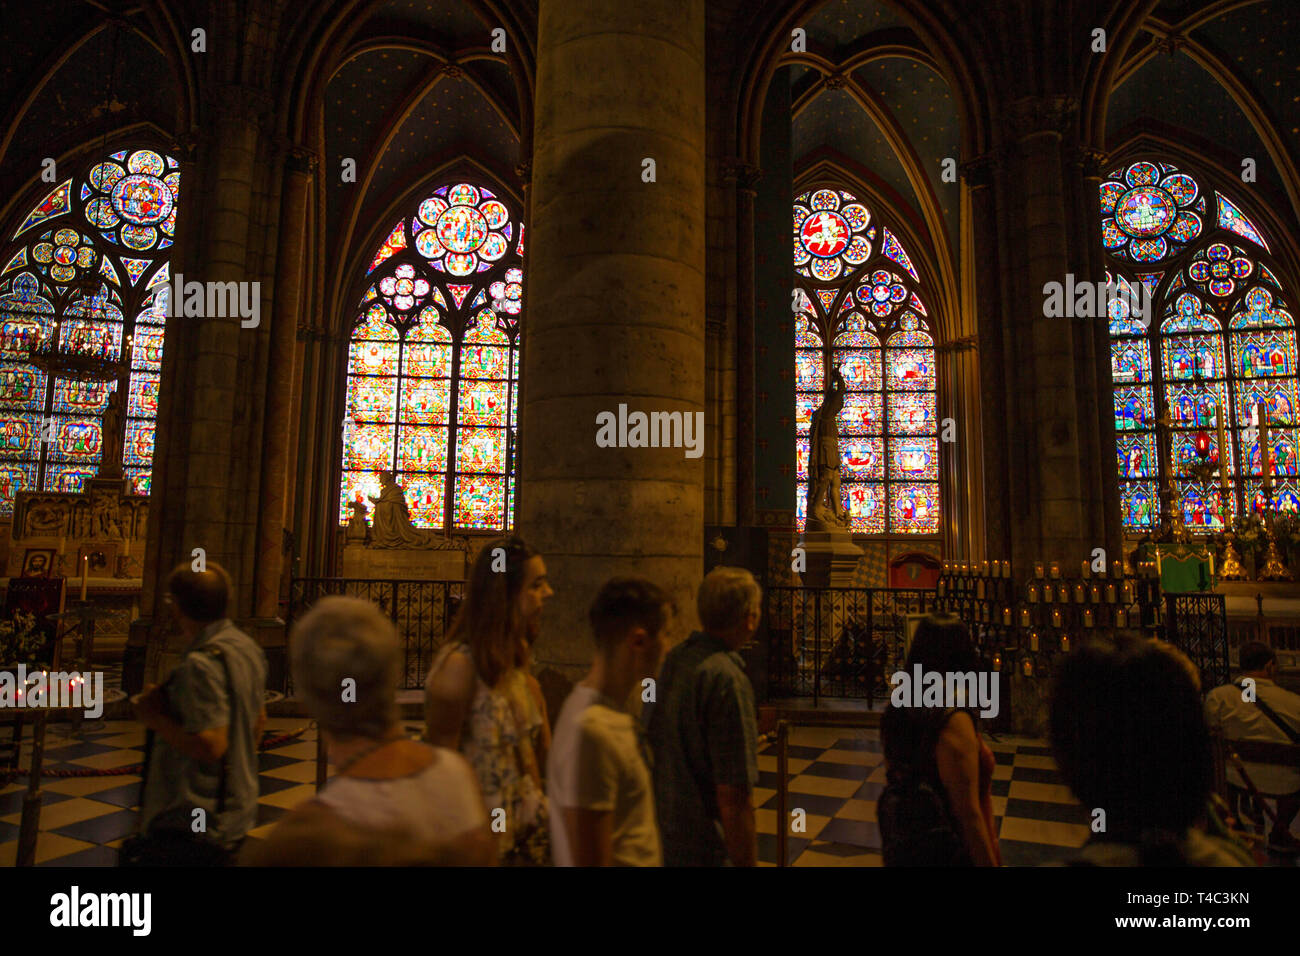 July 26, 2018 - Paris, France - Visitors enjoy the gothic architecture and stain glass windows in Notre-Dame Cathedral. Notre Dame de Paris (French for ''Our Lady of Paris'', meaning the church in Paris dedicated to Mary, the mother of Jesus), often known simply as Notre-Dame in English, is a gothic cathedral on the eastern half of the Ile de la Cite in Paris, France, with its main entrance to the west. While a major tourist destination, it is still used as a Roman Catholic cathedral (archbishopric of Paris). Notre Dame de Paris is widely considered the finest example of French gothic architec - Stock Image